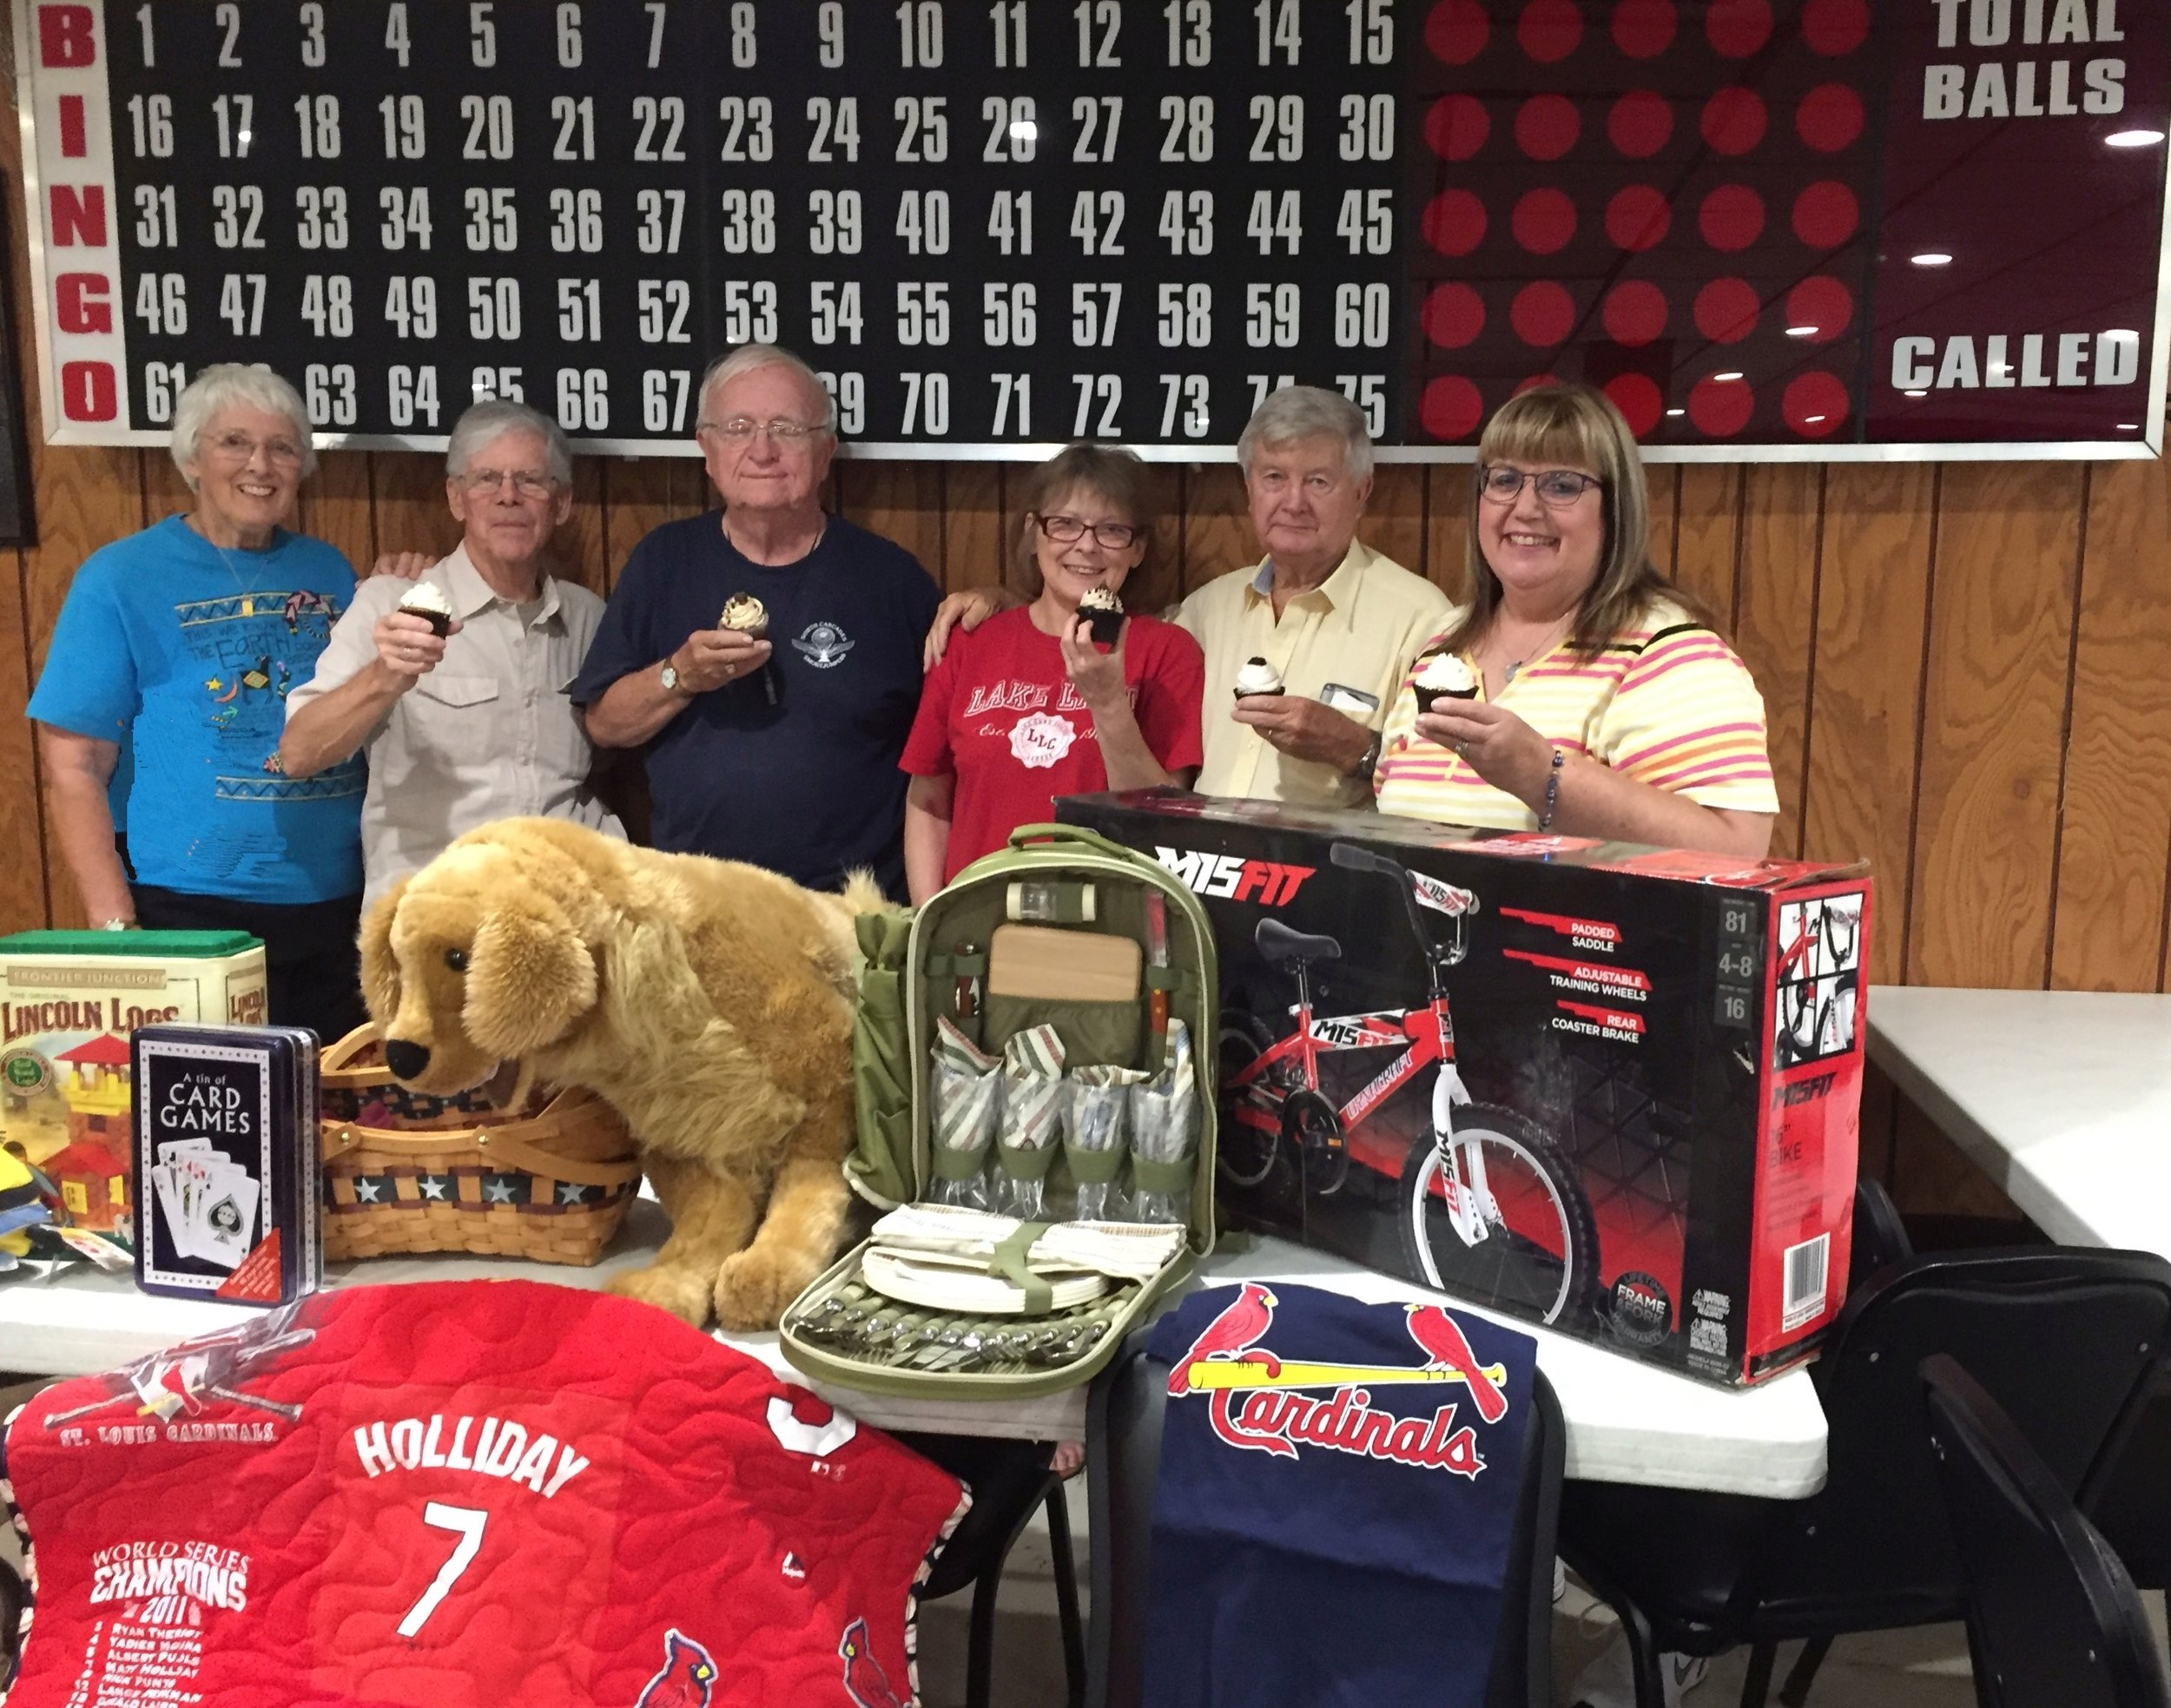 Standing behind the display of bingo prizes and raffle items, with a sweet prize be auctioned off -- cupcakes from Sweet Norma Jean's bakery of Casey, are members of the Five Mile House Foundation board: Kathy Hummel, Tom Vance, Dick Hummel, Giuliana Dongu, Les Dallas, and Karen Jennings.